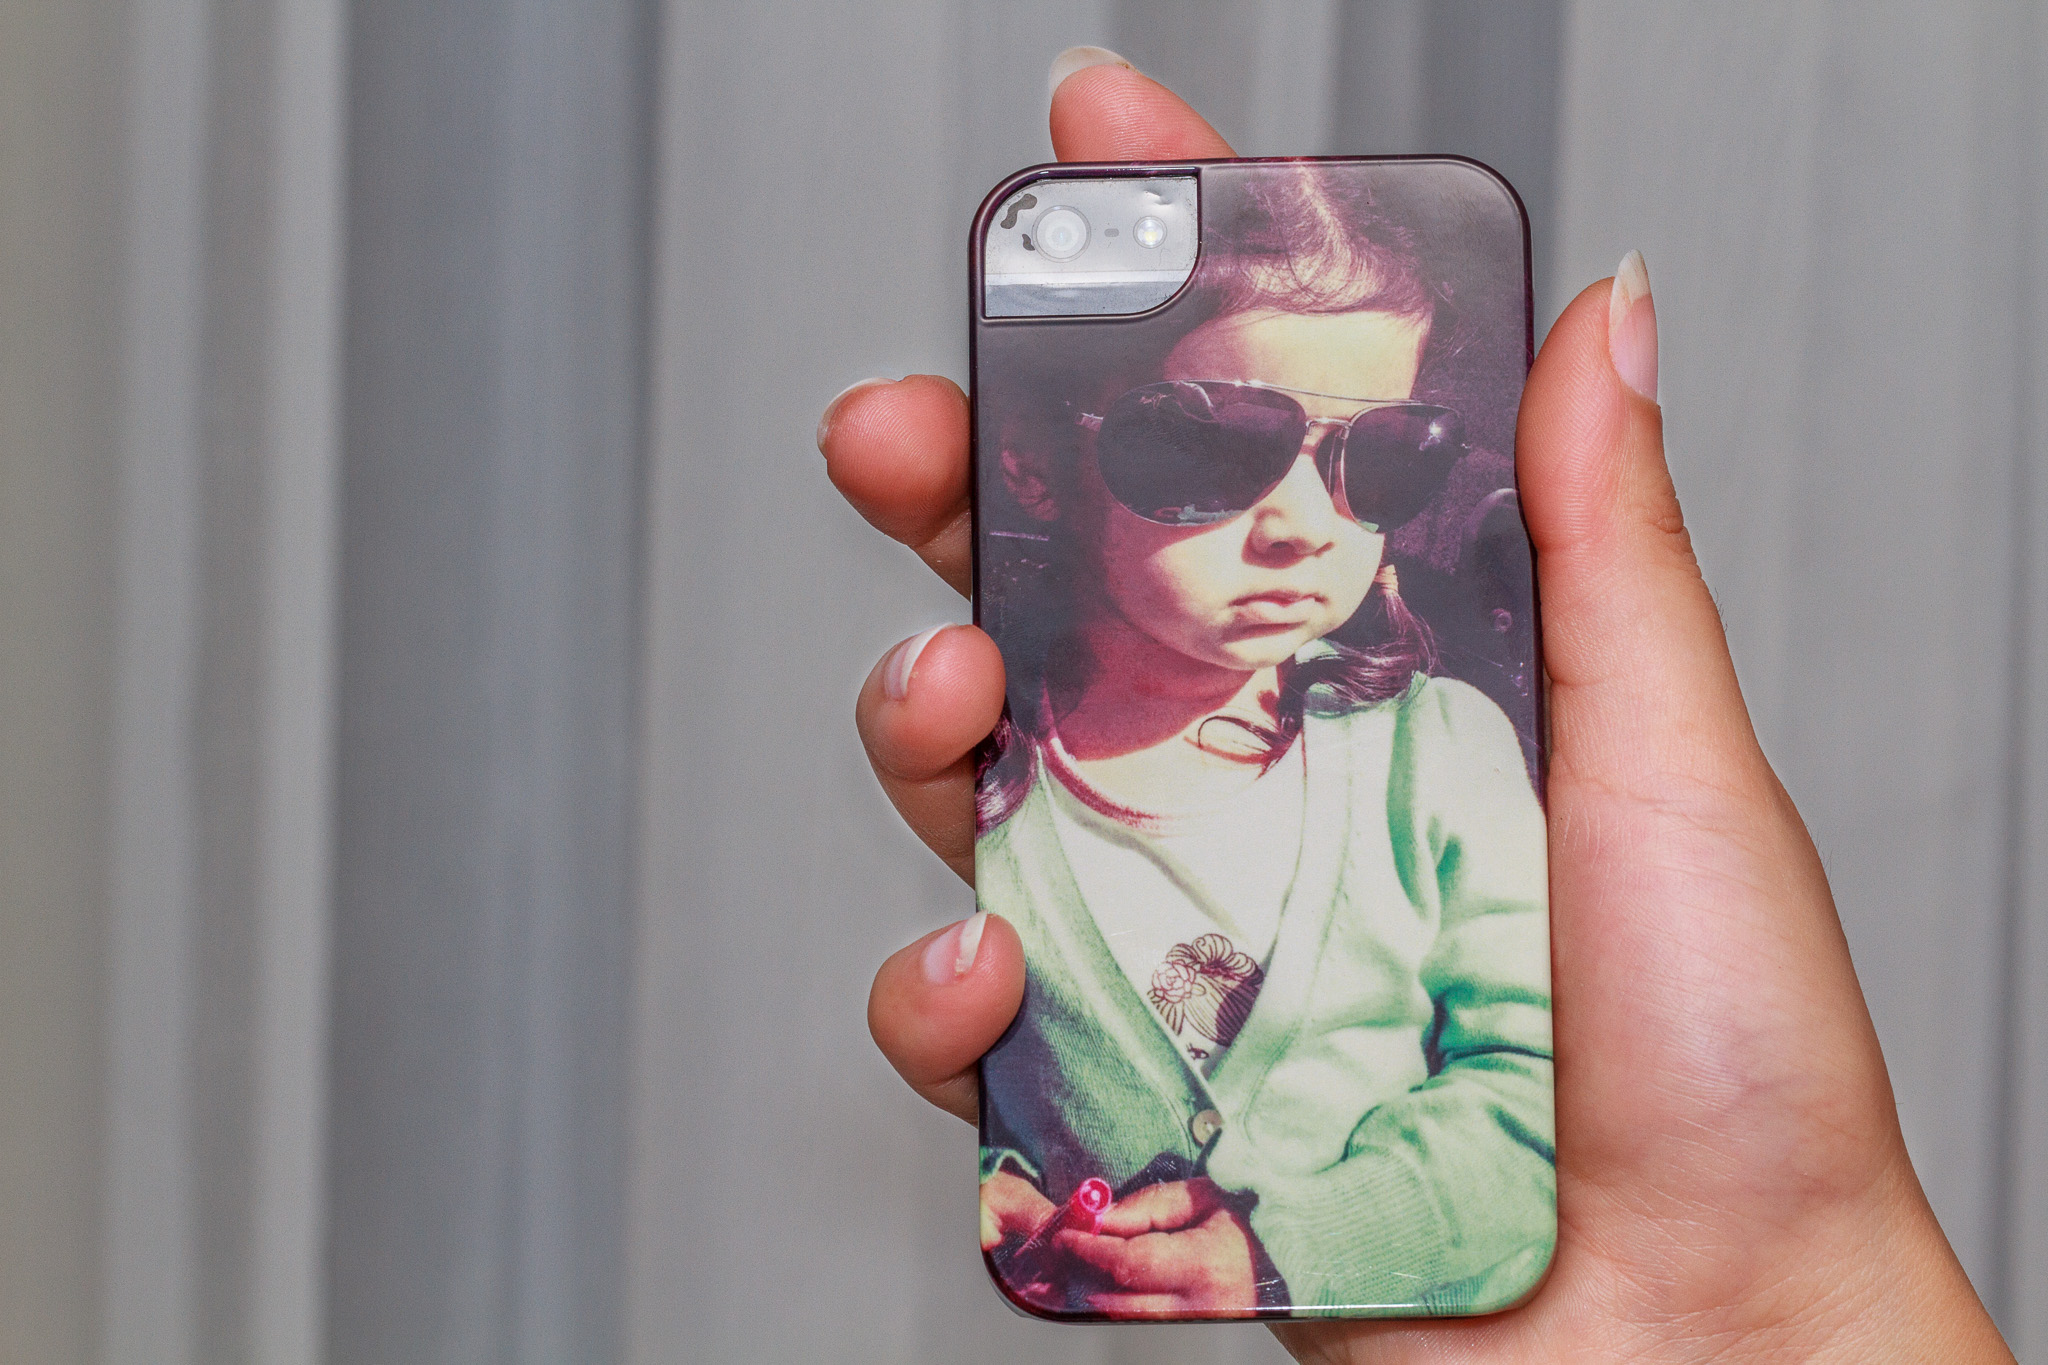 Personalised Skins Cases from Wrappz